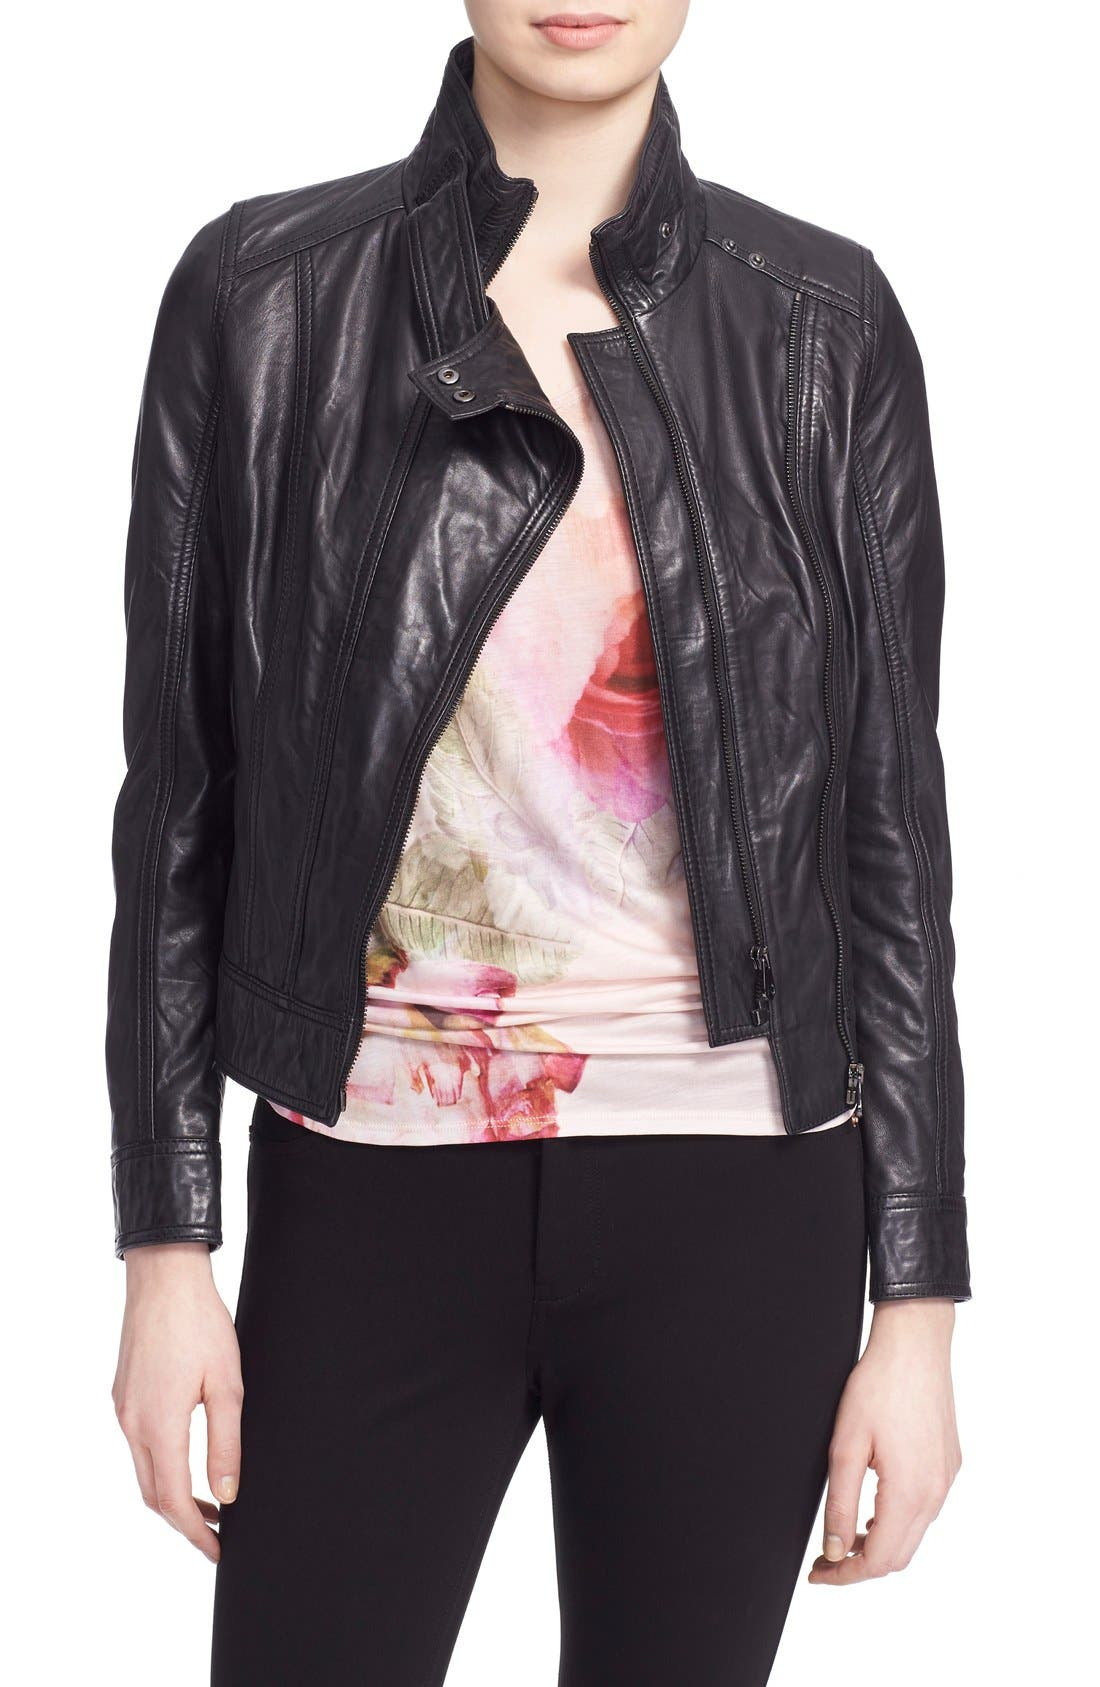 'Roark' Stand Collar Leather Jacket,                             Main thumbnail 1, color,                             001